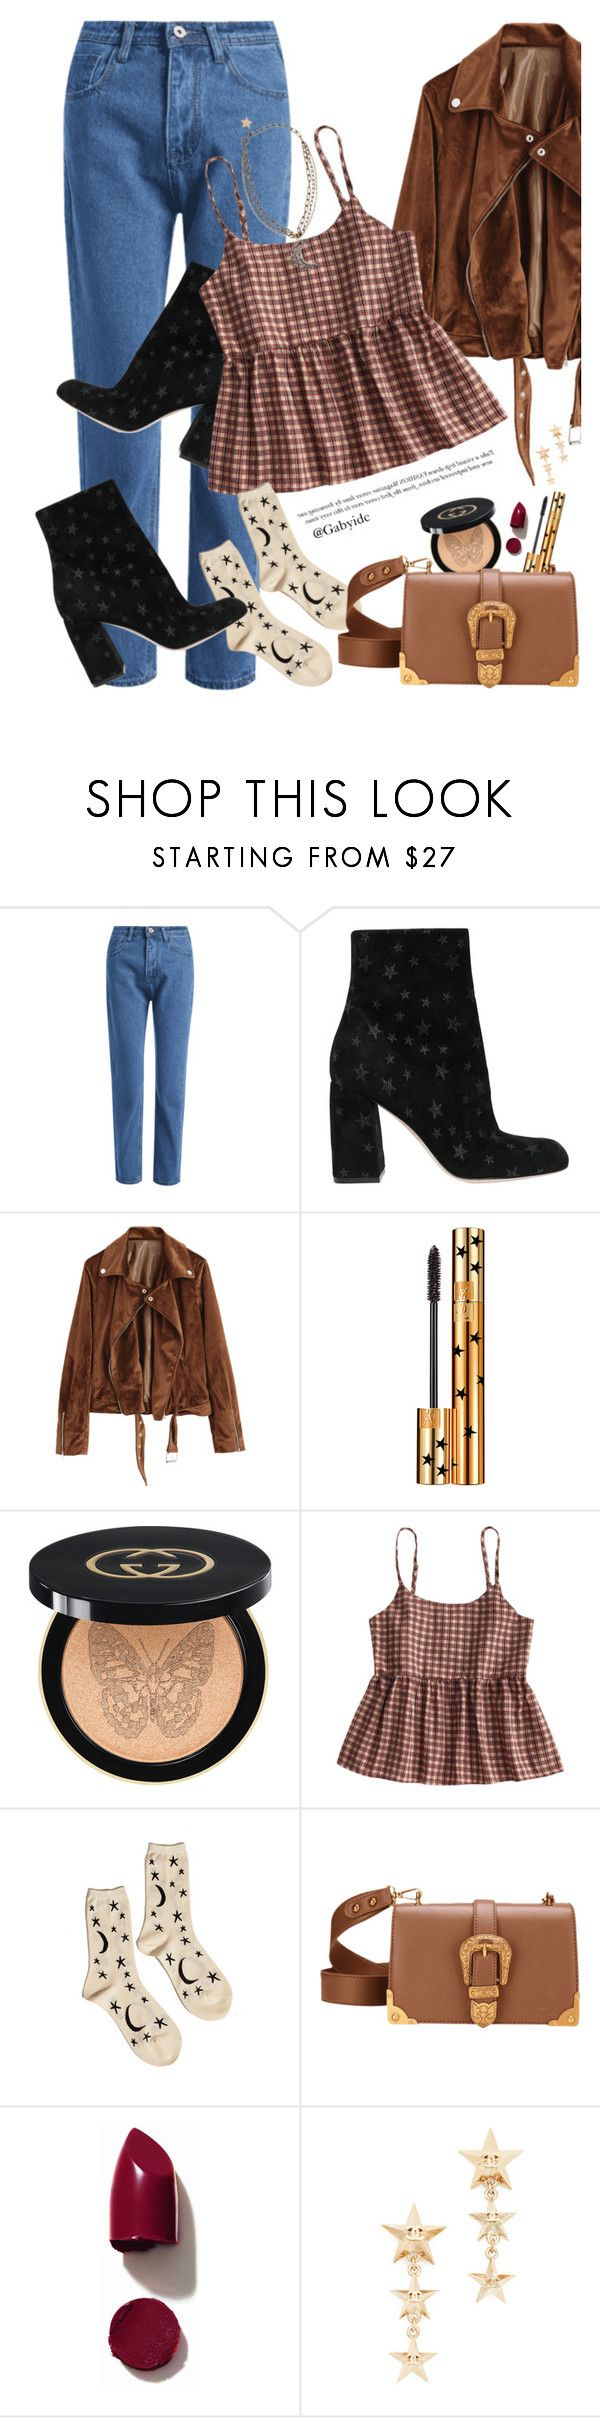 """"" by gabyidc ❤ liked on Polyvore featuring RED Valentino, Yves Saint Laurent, Gucci, Hansel from Basel, NARS Cosmetics and Lanvin"